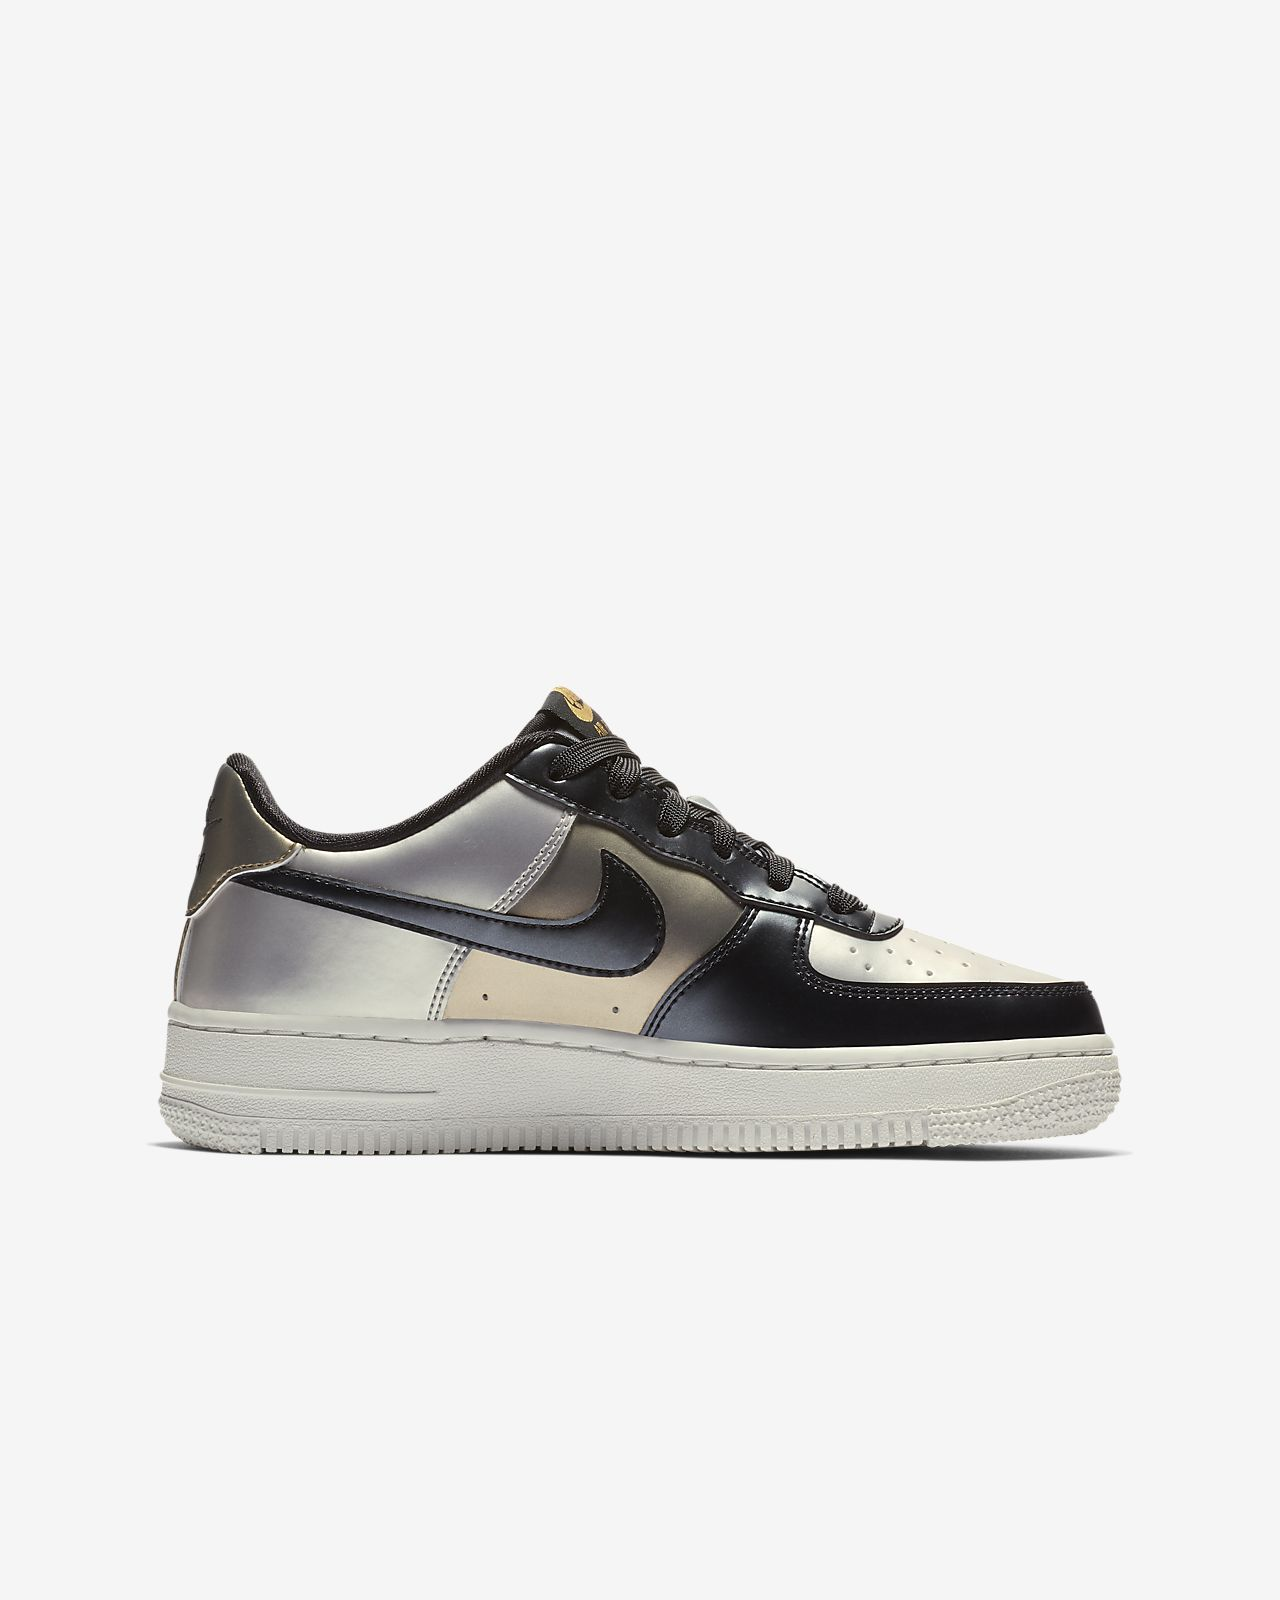 Nike Air Force 1 LV8 Leather Chaussures Nike Sportswear